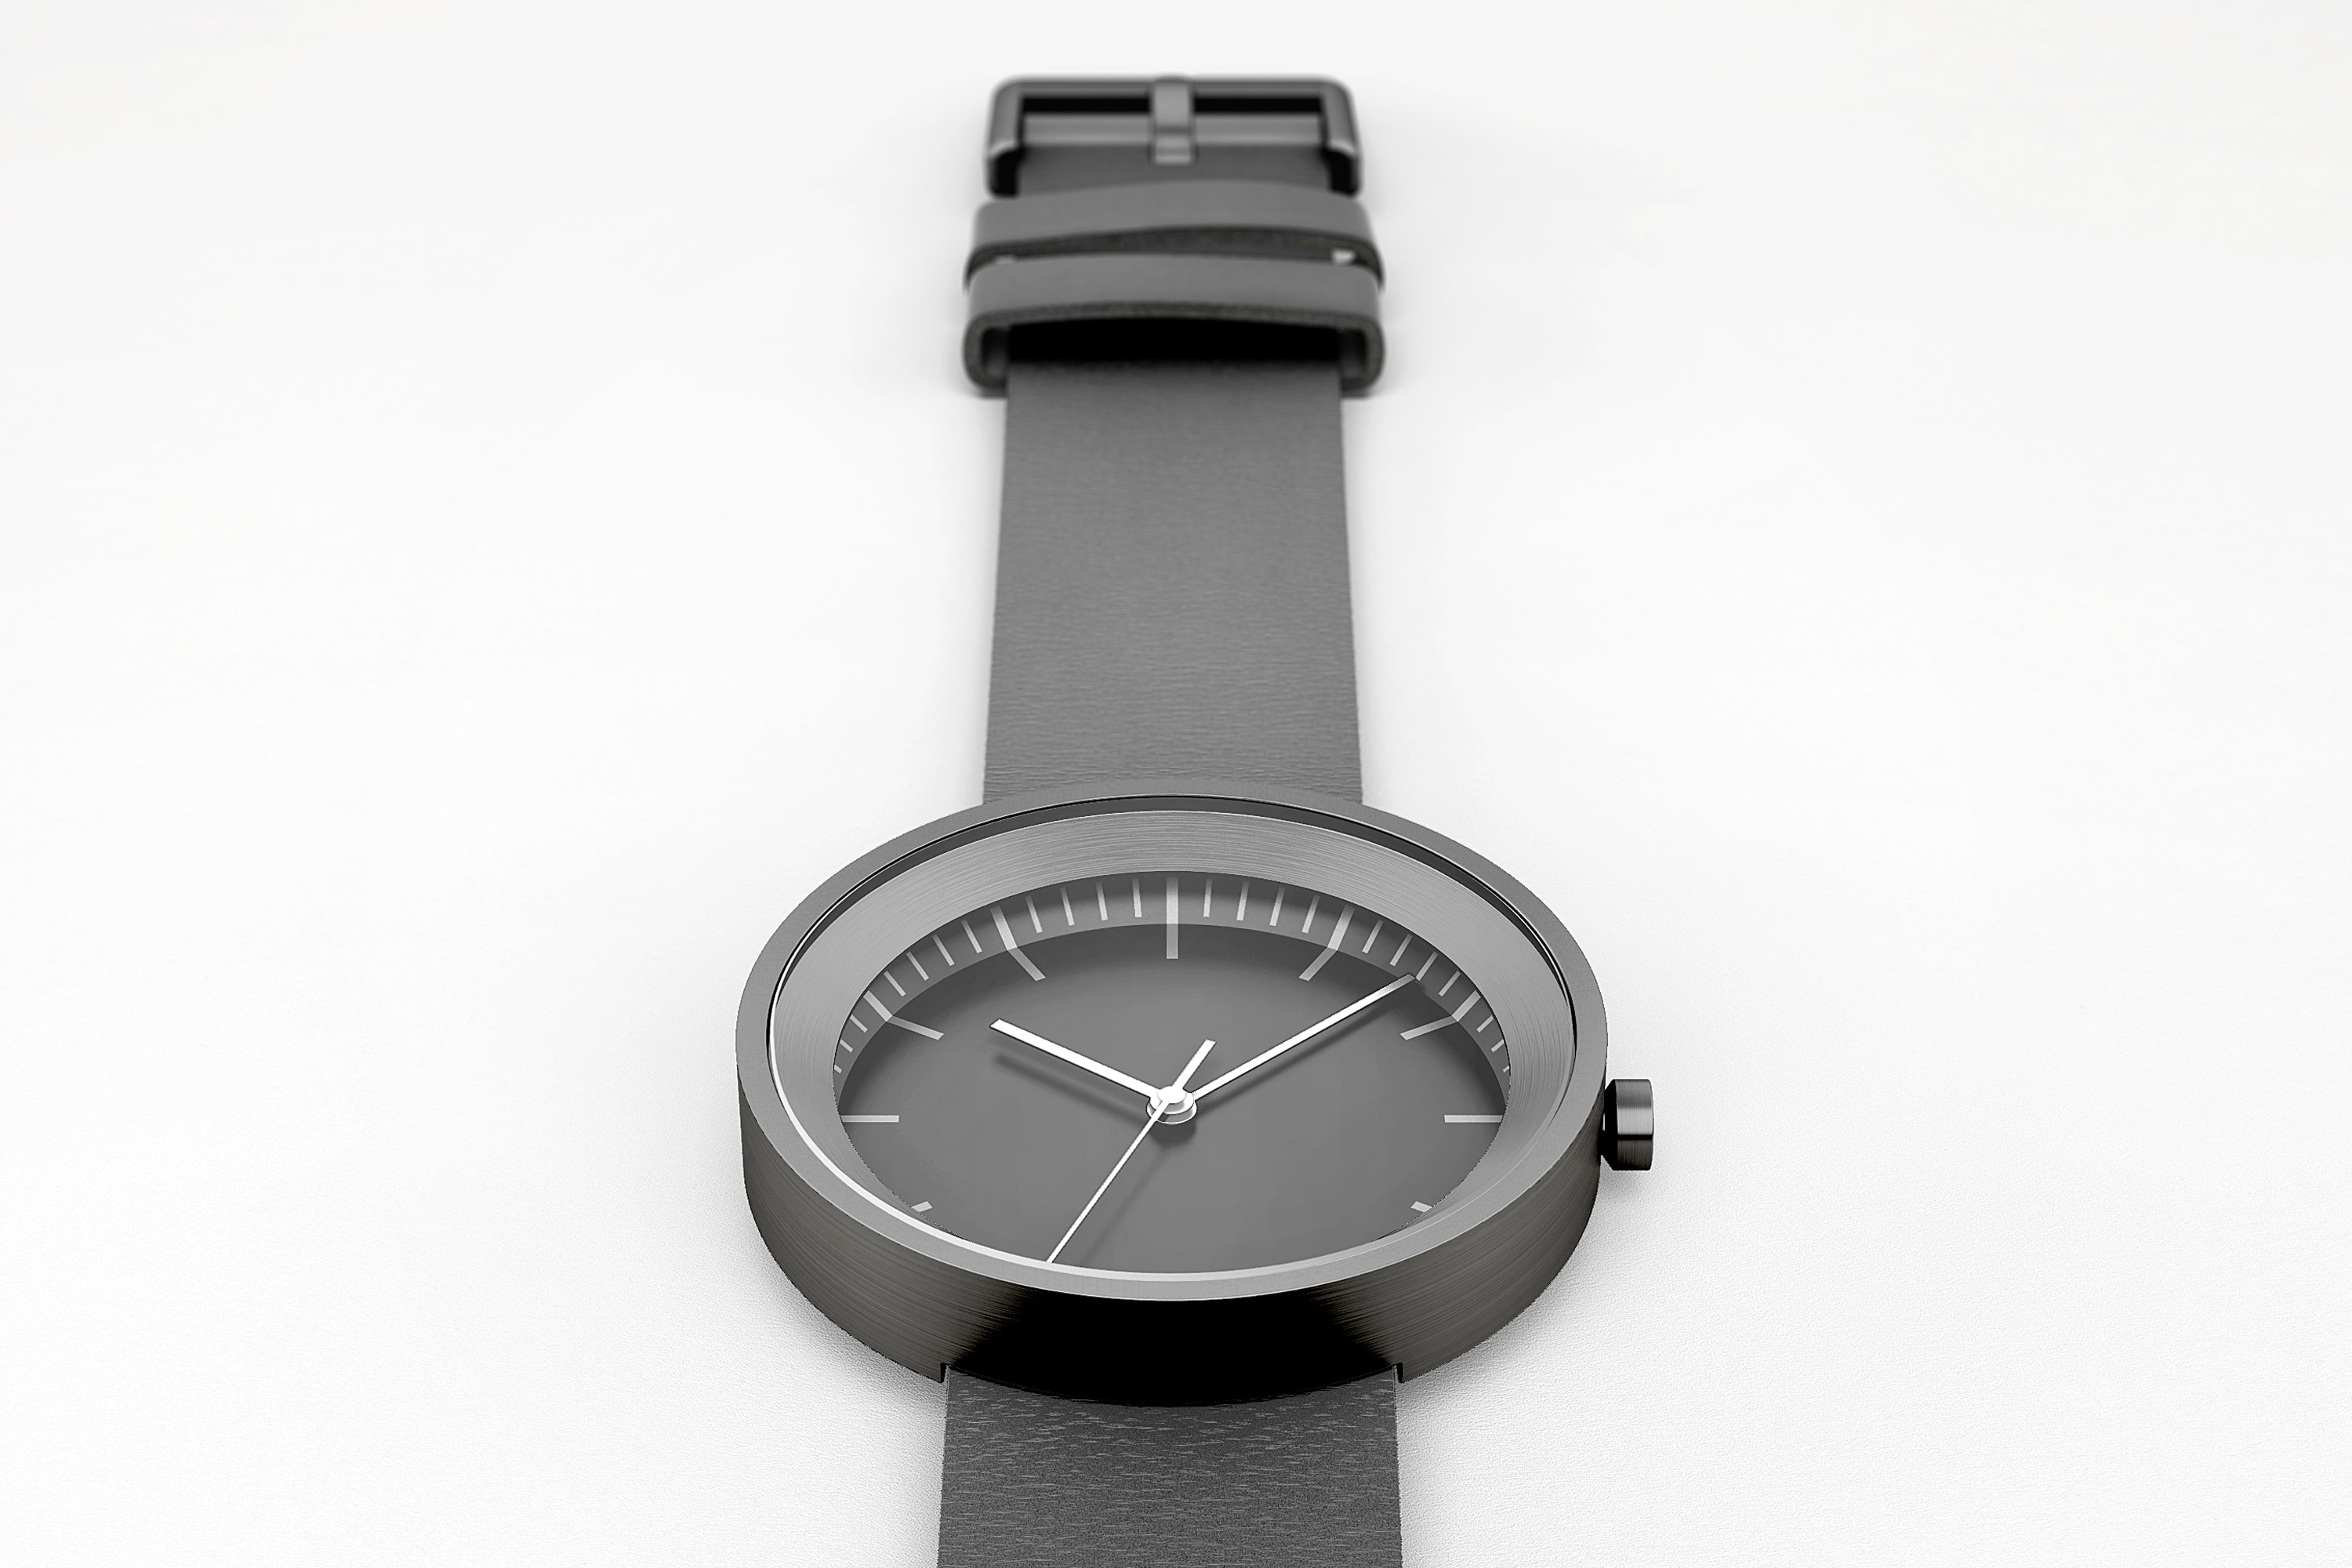 Top view of Hide Watch showing the fastening and minute mark details, Black.